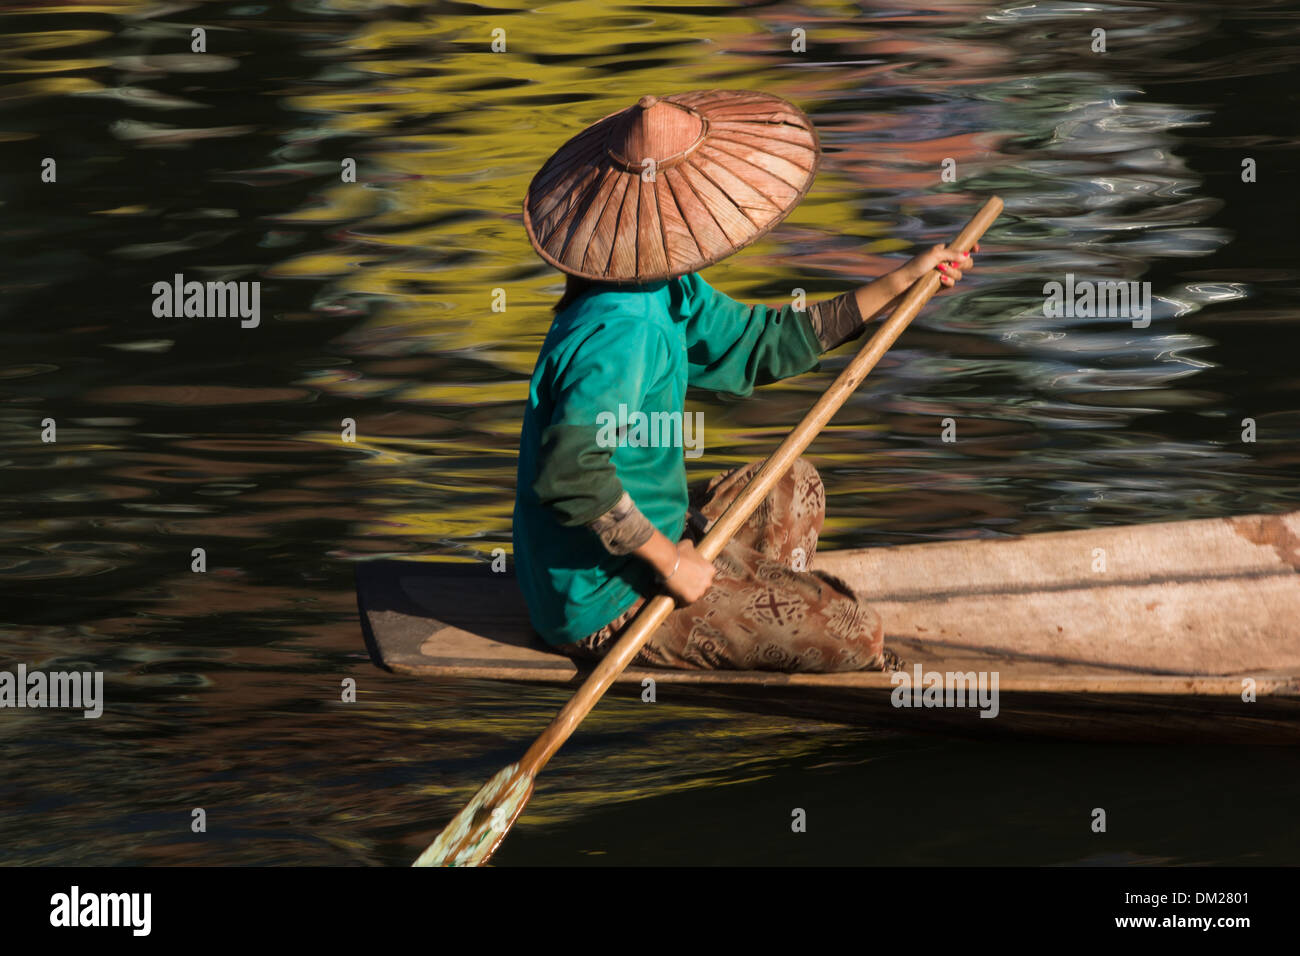 a woman paddling on Inle Lake, Myanmar (Burma) - Stock Image